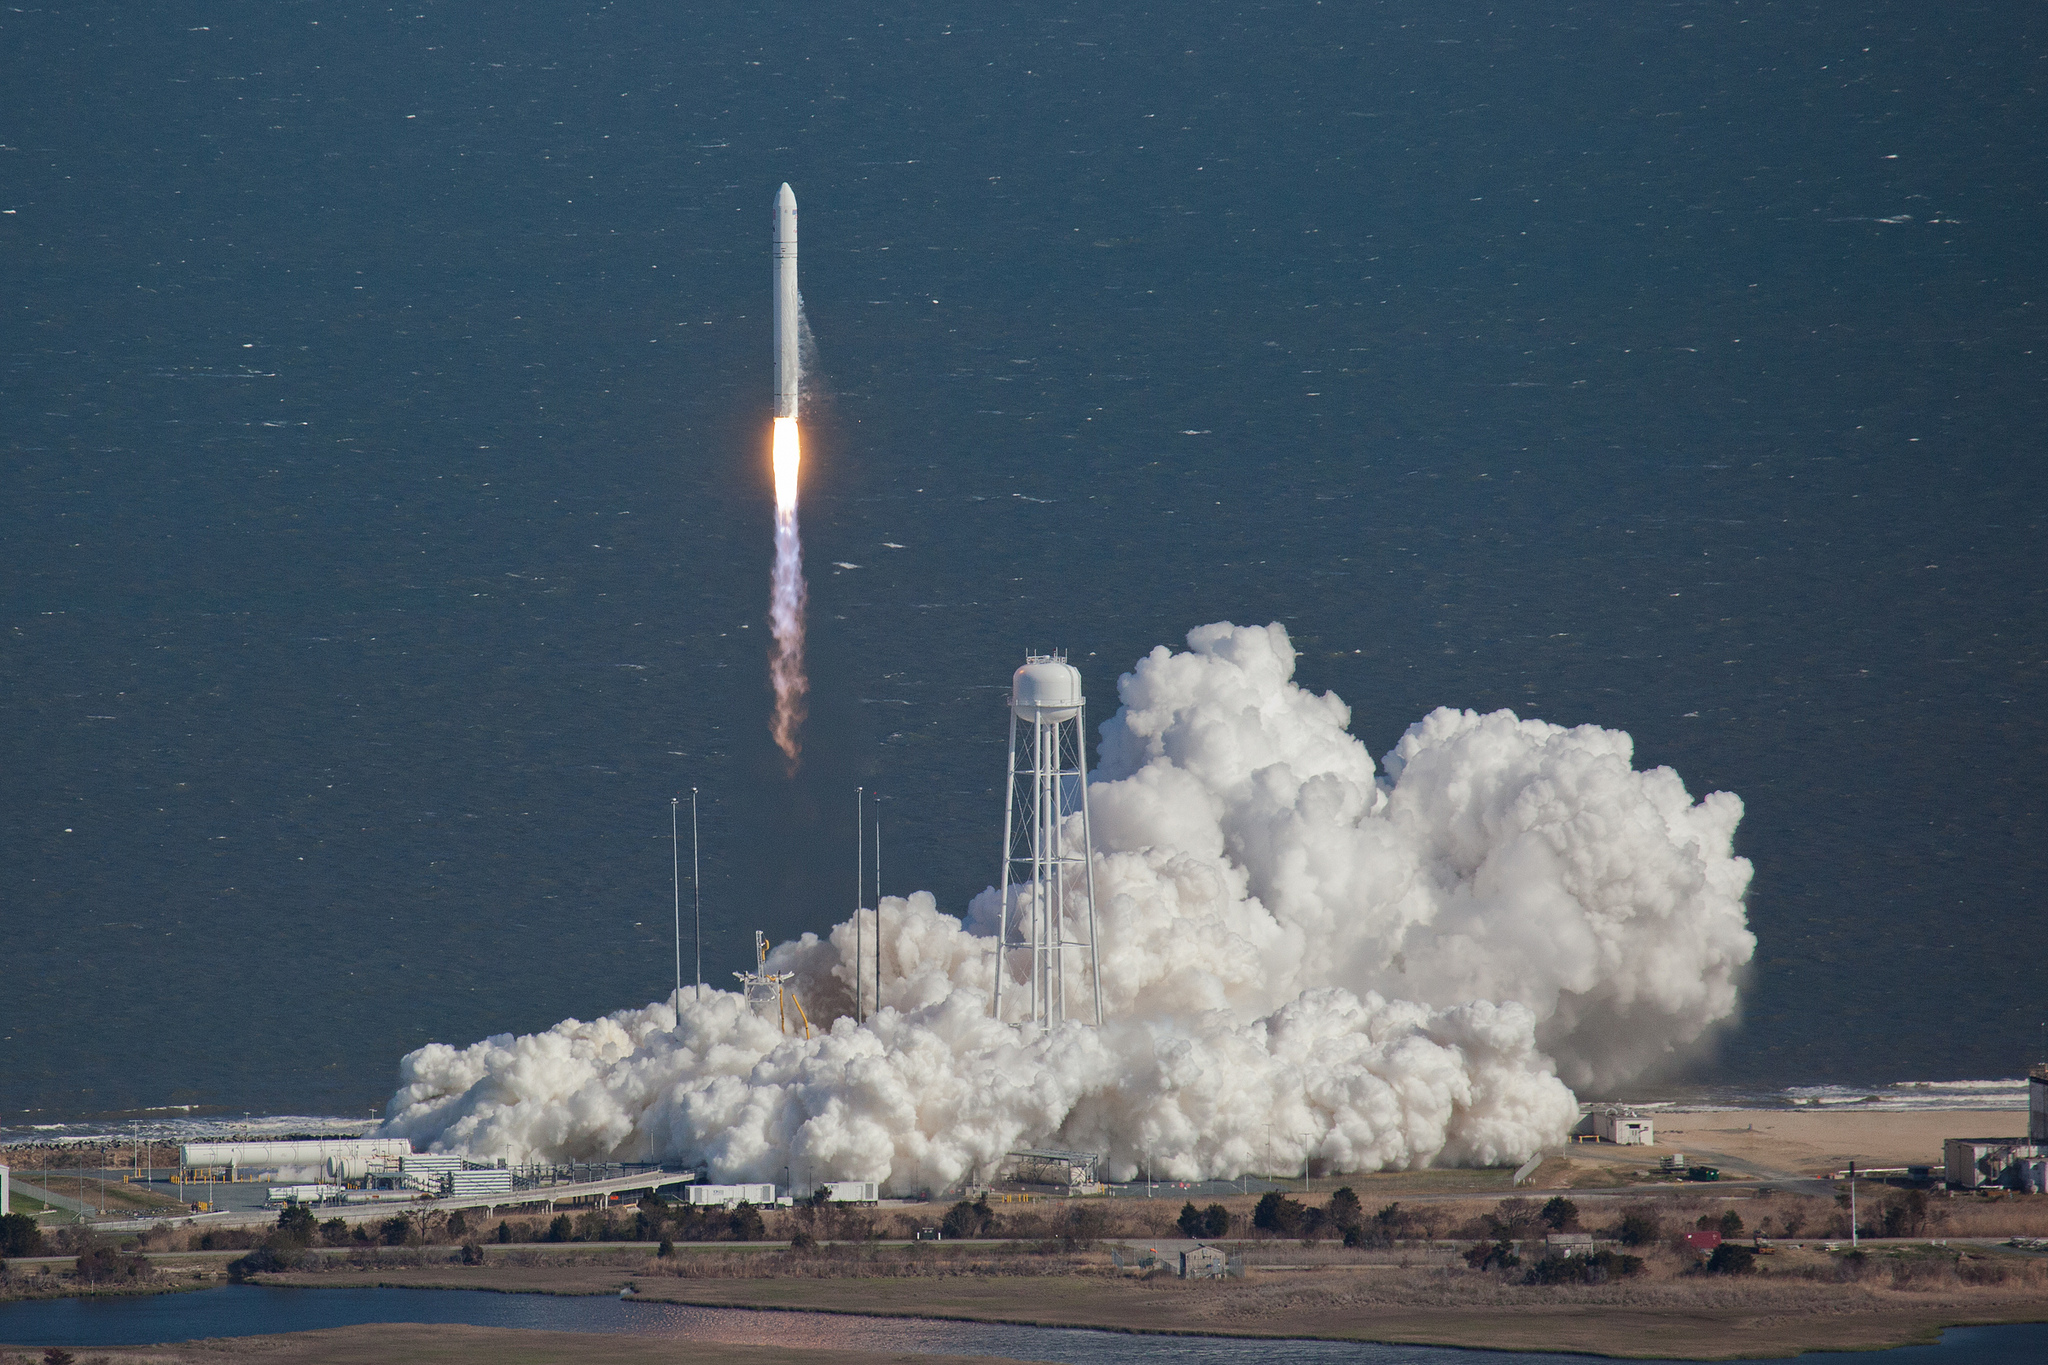 Orbital Sciences Corporation launched its Antares rocket from the Wallops Island launch site in 2013. (NASA Goddard Space Flight/2013)